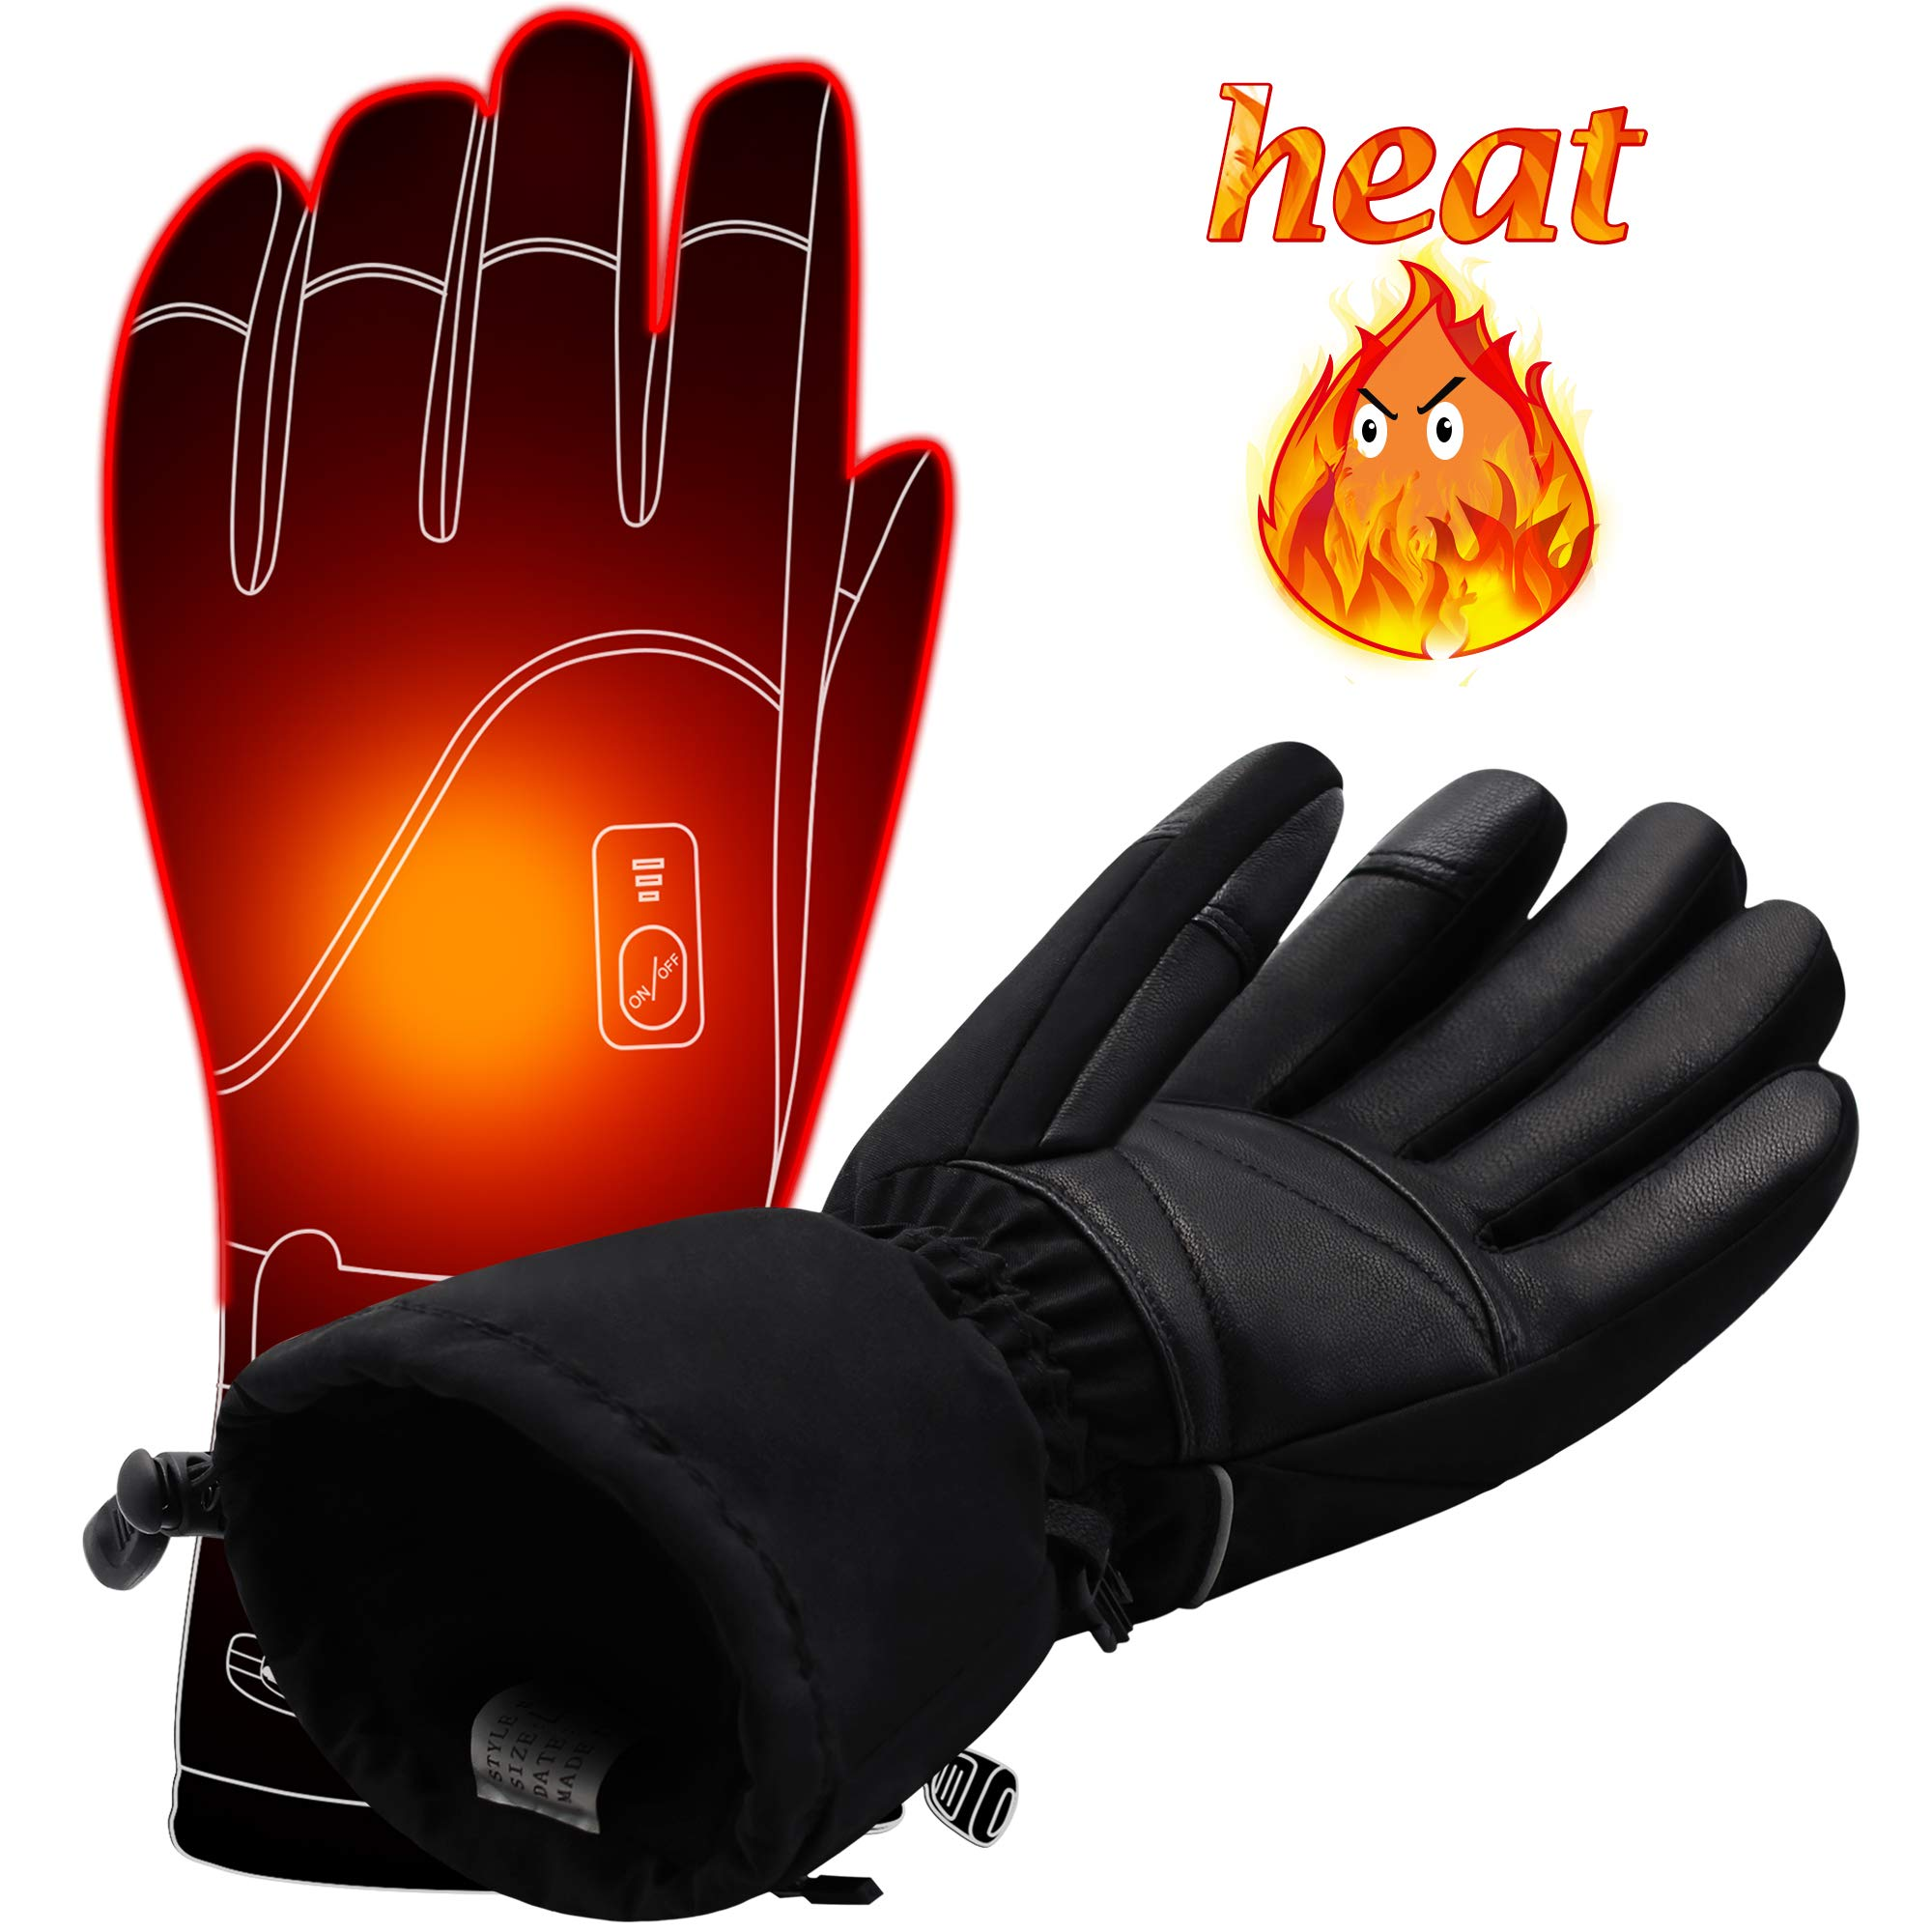 Autocastle Men Women Electric Heated GlovesTouchscreen Heating Gloves with 2200mAh Li-Po Battery,Heat Insulated Thermal Gloves for Climbing Hiking Skiing,3 Heat,Hand Warmer,Black (L) by Autocastle